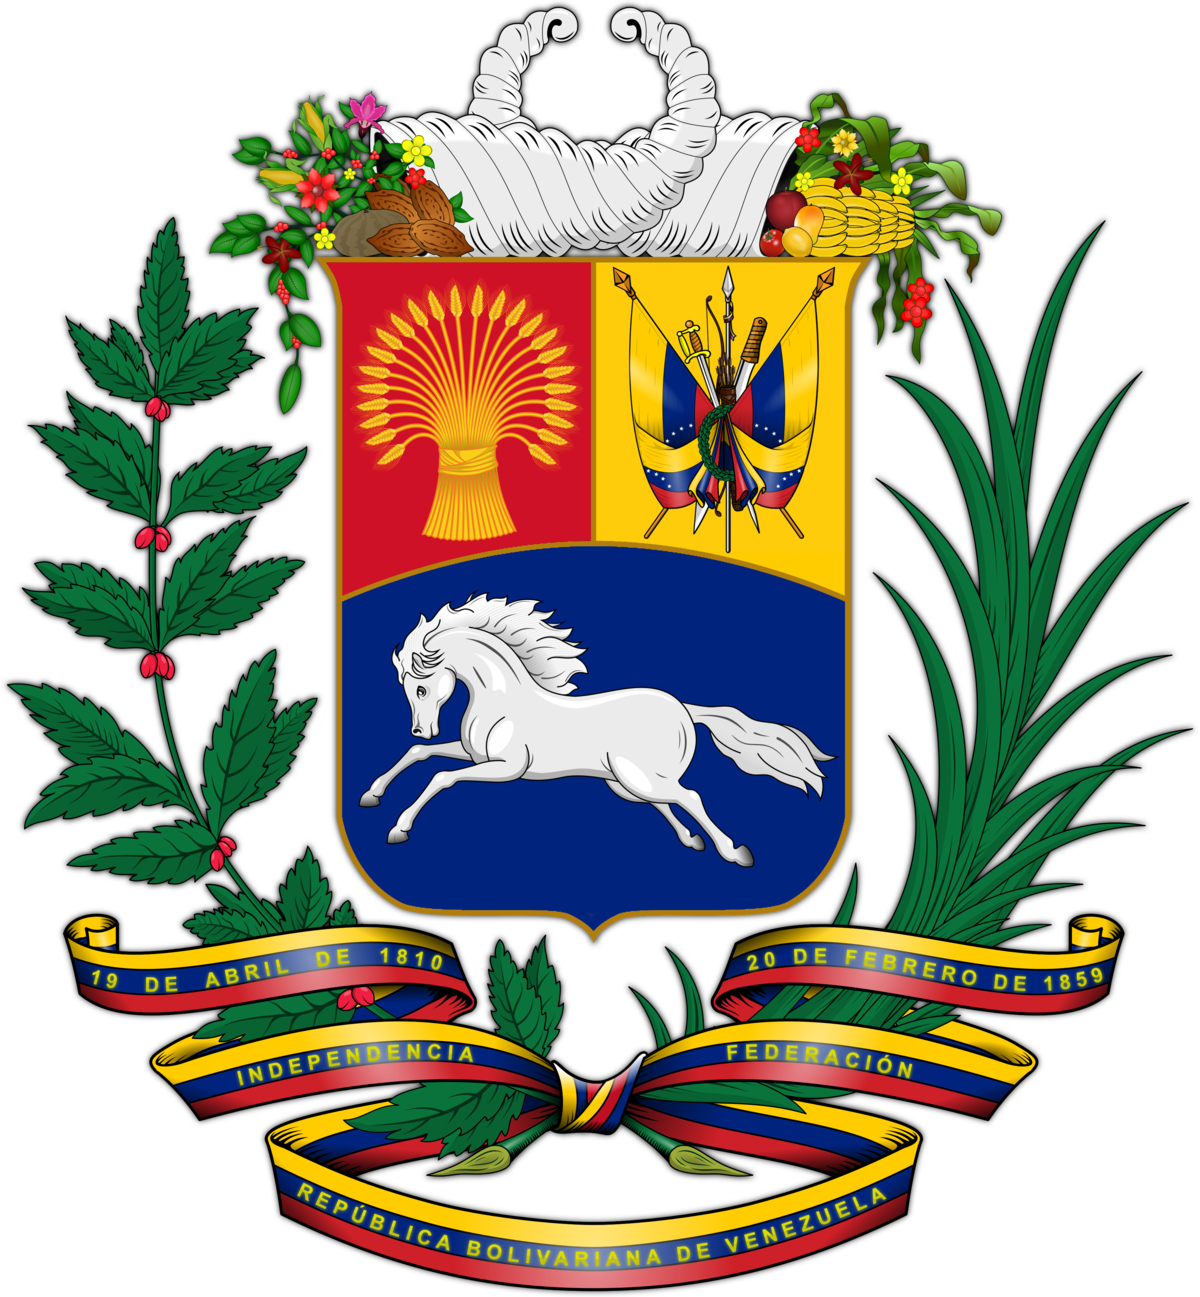 Coat of arms of venezuela wikipedia for Fundacion de venezuela